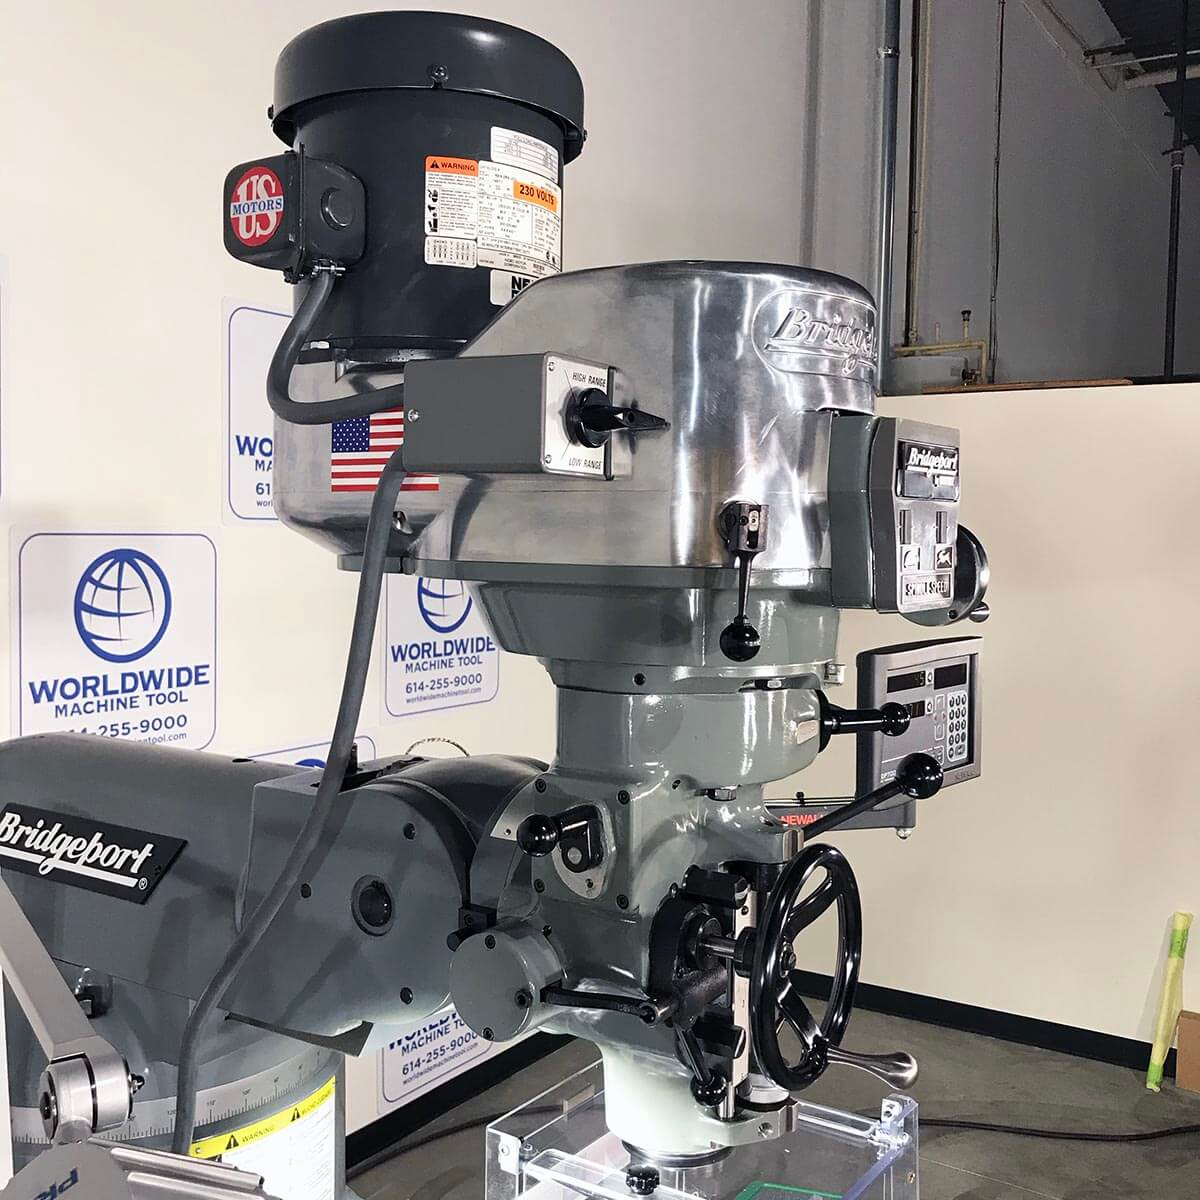 New Bridgeport Mill Series 1 for sale at Worldwide Machine Tool